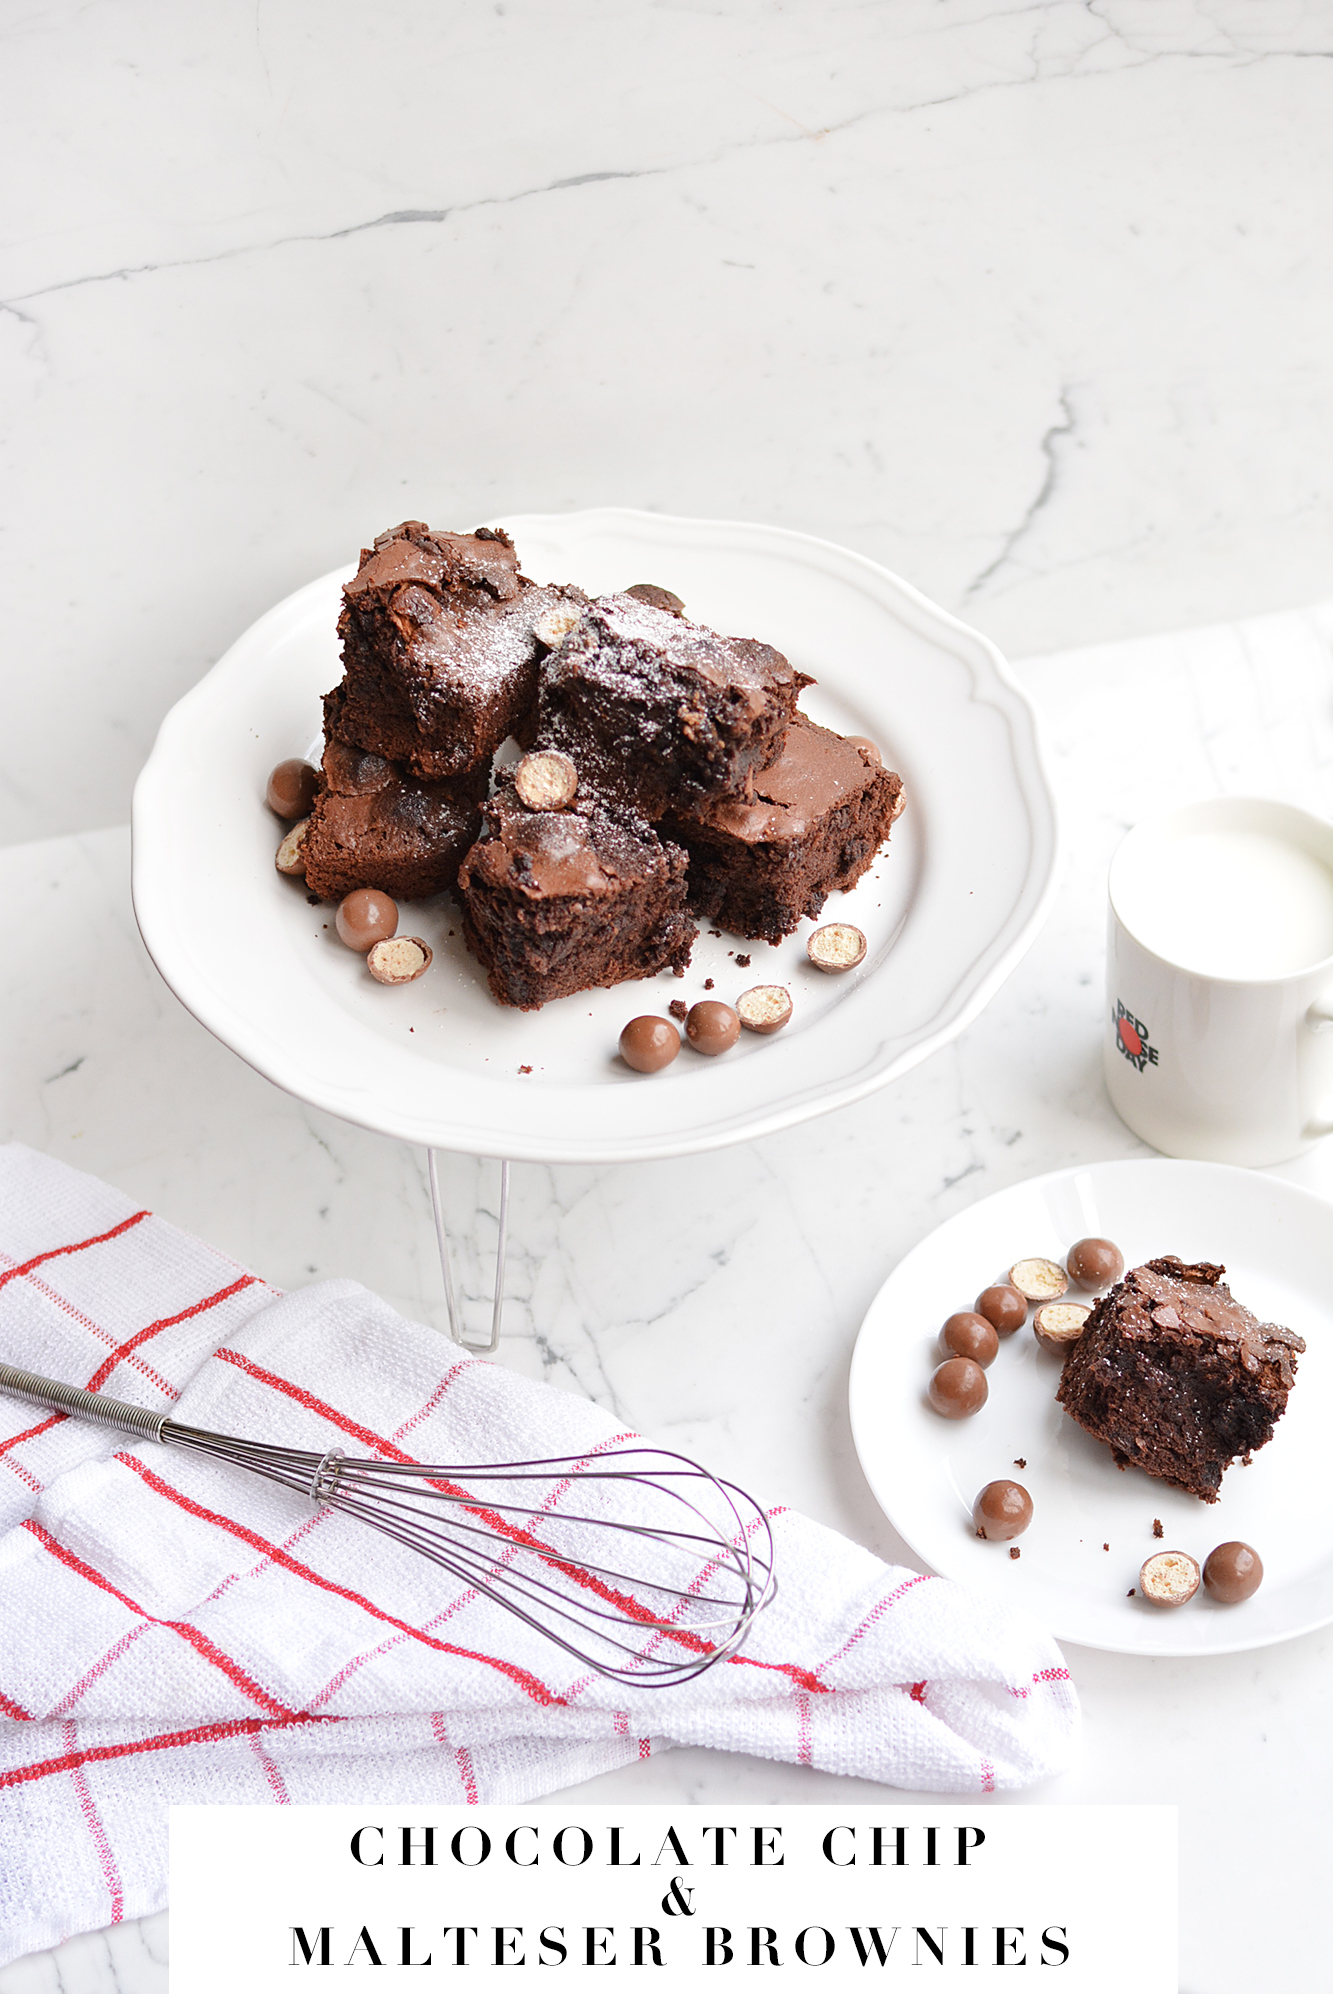 MALTESERS BROWNIES – BAKE A MASSIVE DIFFERENCE